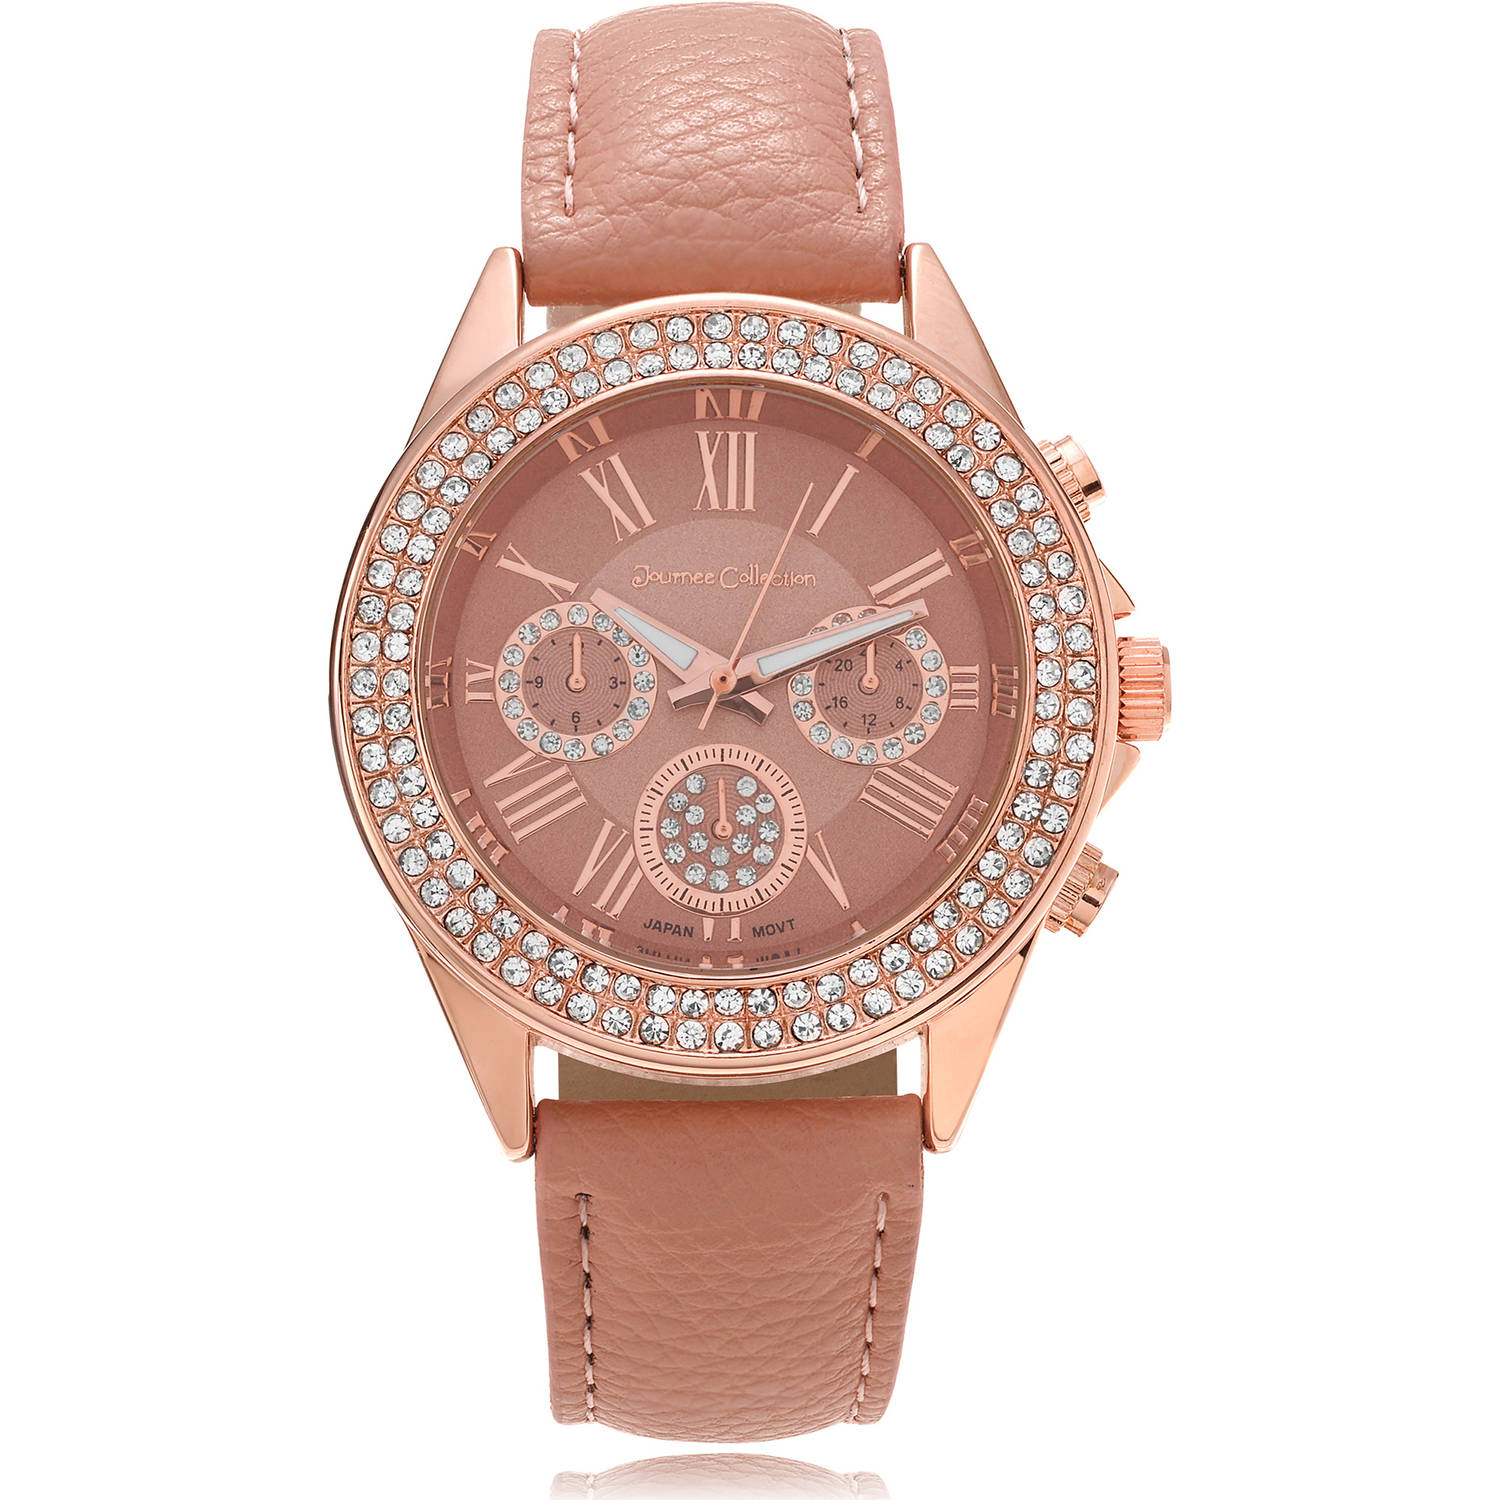 Journee Collection Women's Rhinestone Roman Numeral Leather Strap Fashion Watch, Blush/Rose Gold